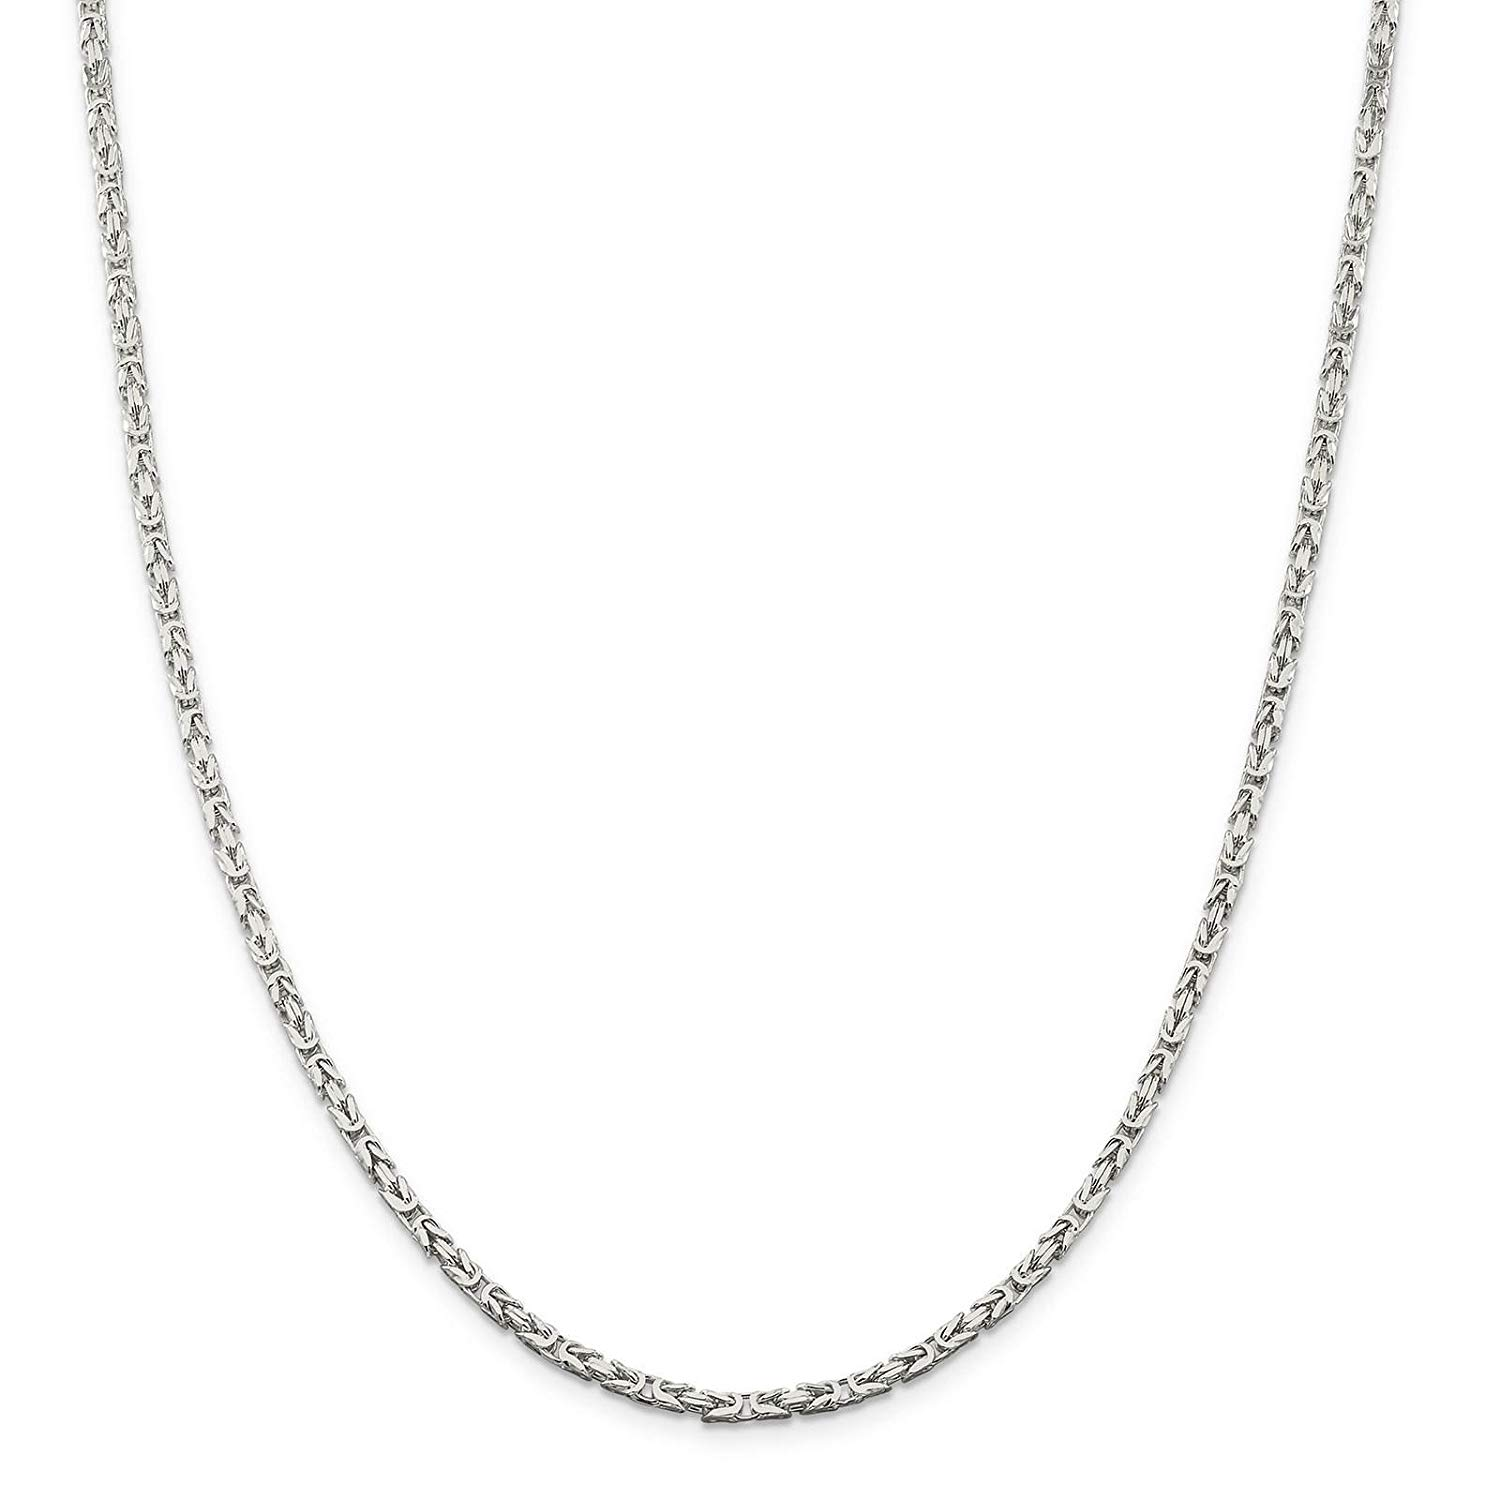 """925 Sterling Silver 2.5mm Polished Square Byzantine Chain Necklace 7"""" - 30"""""""